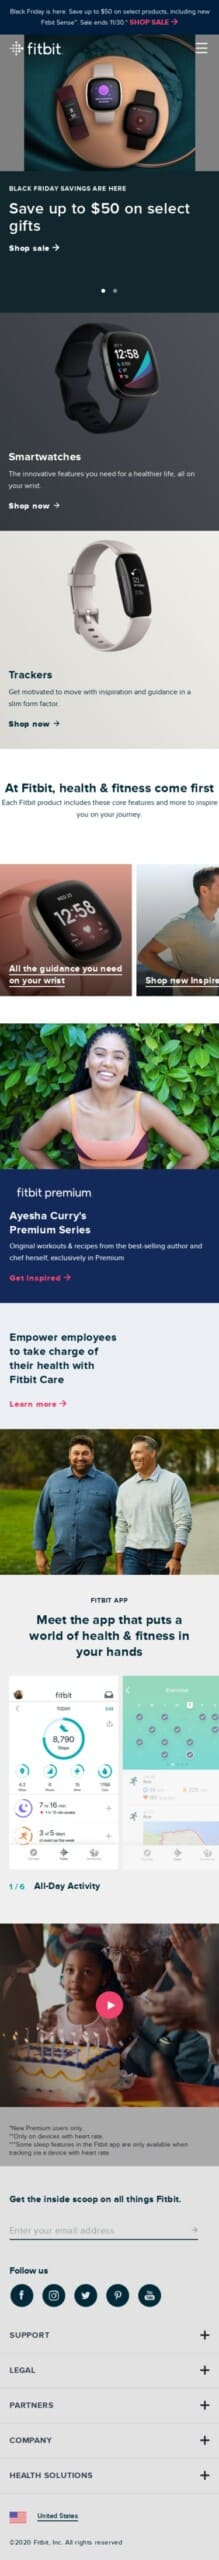 fitbit Coupon